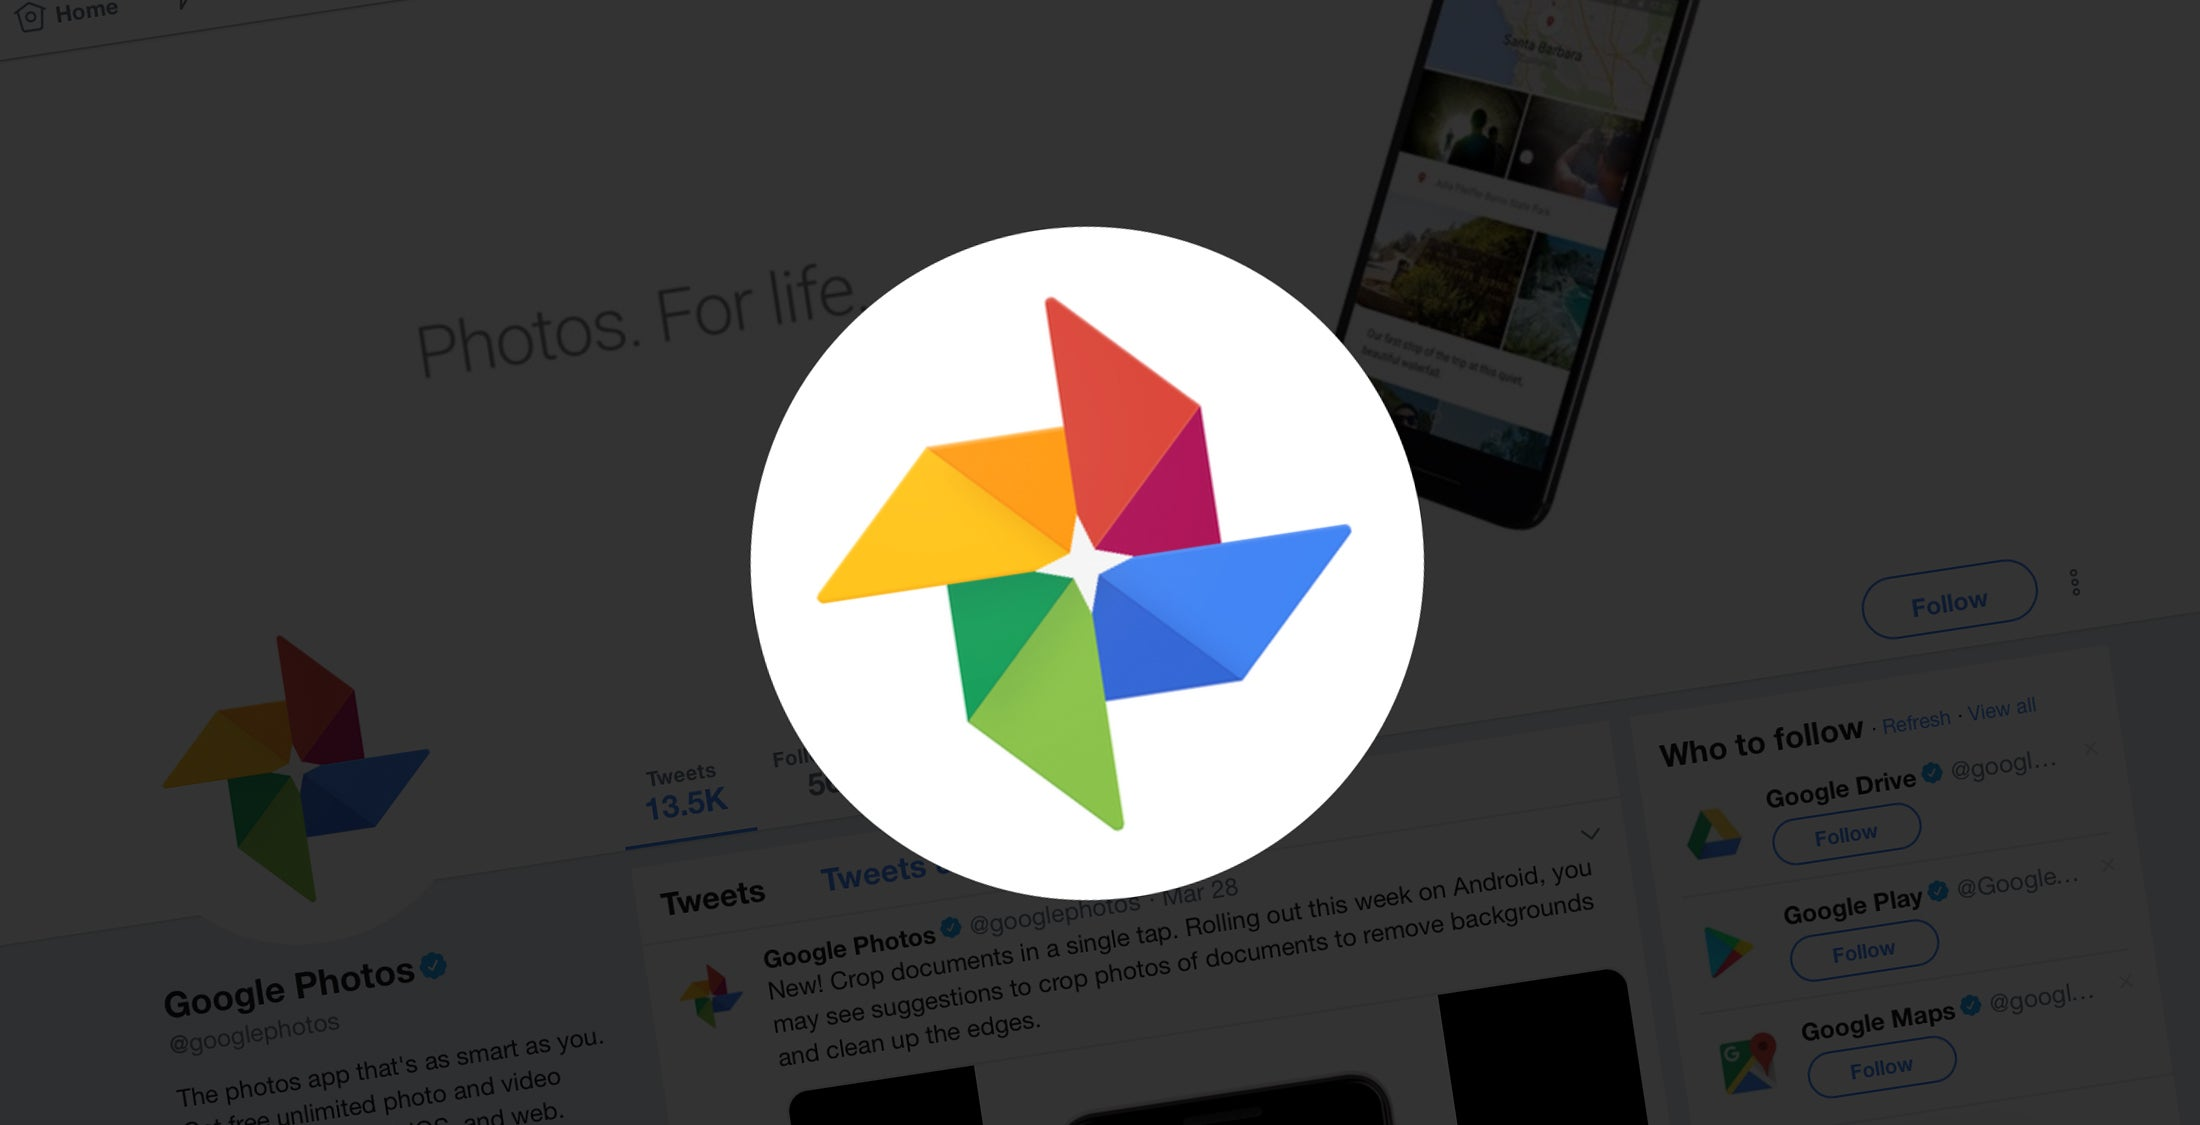 Google Photos finally adds manual face tagging, but there's a catch